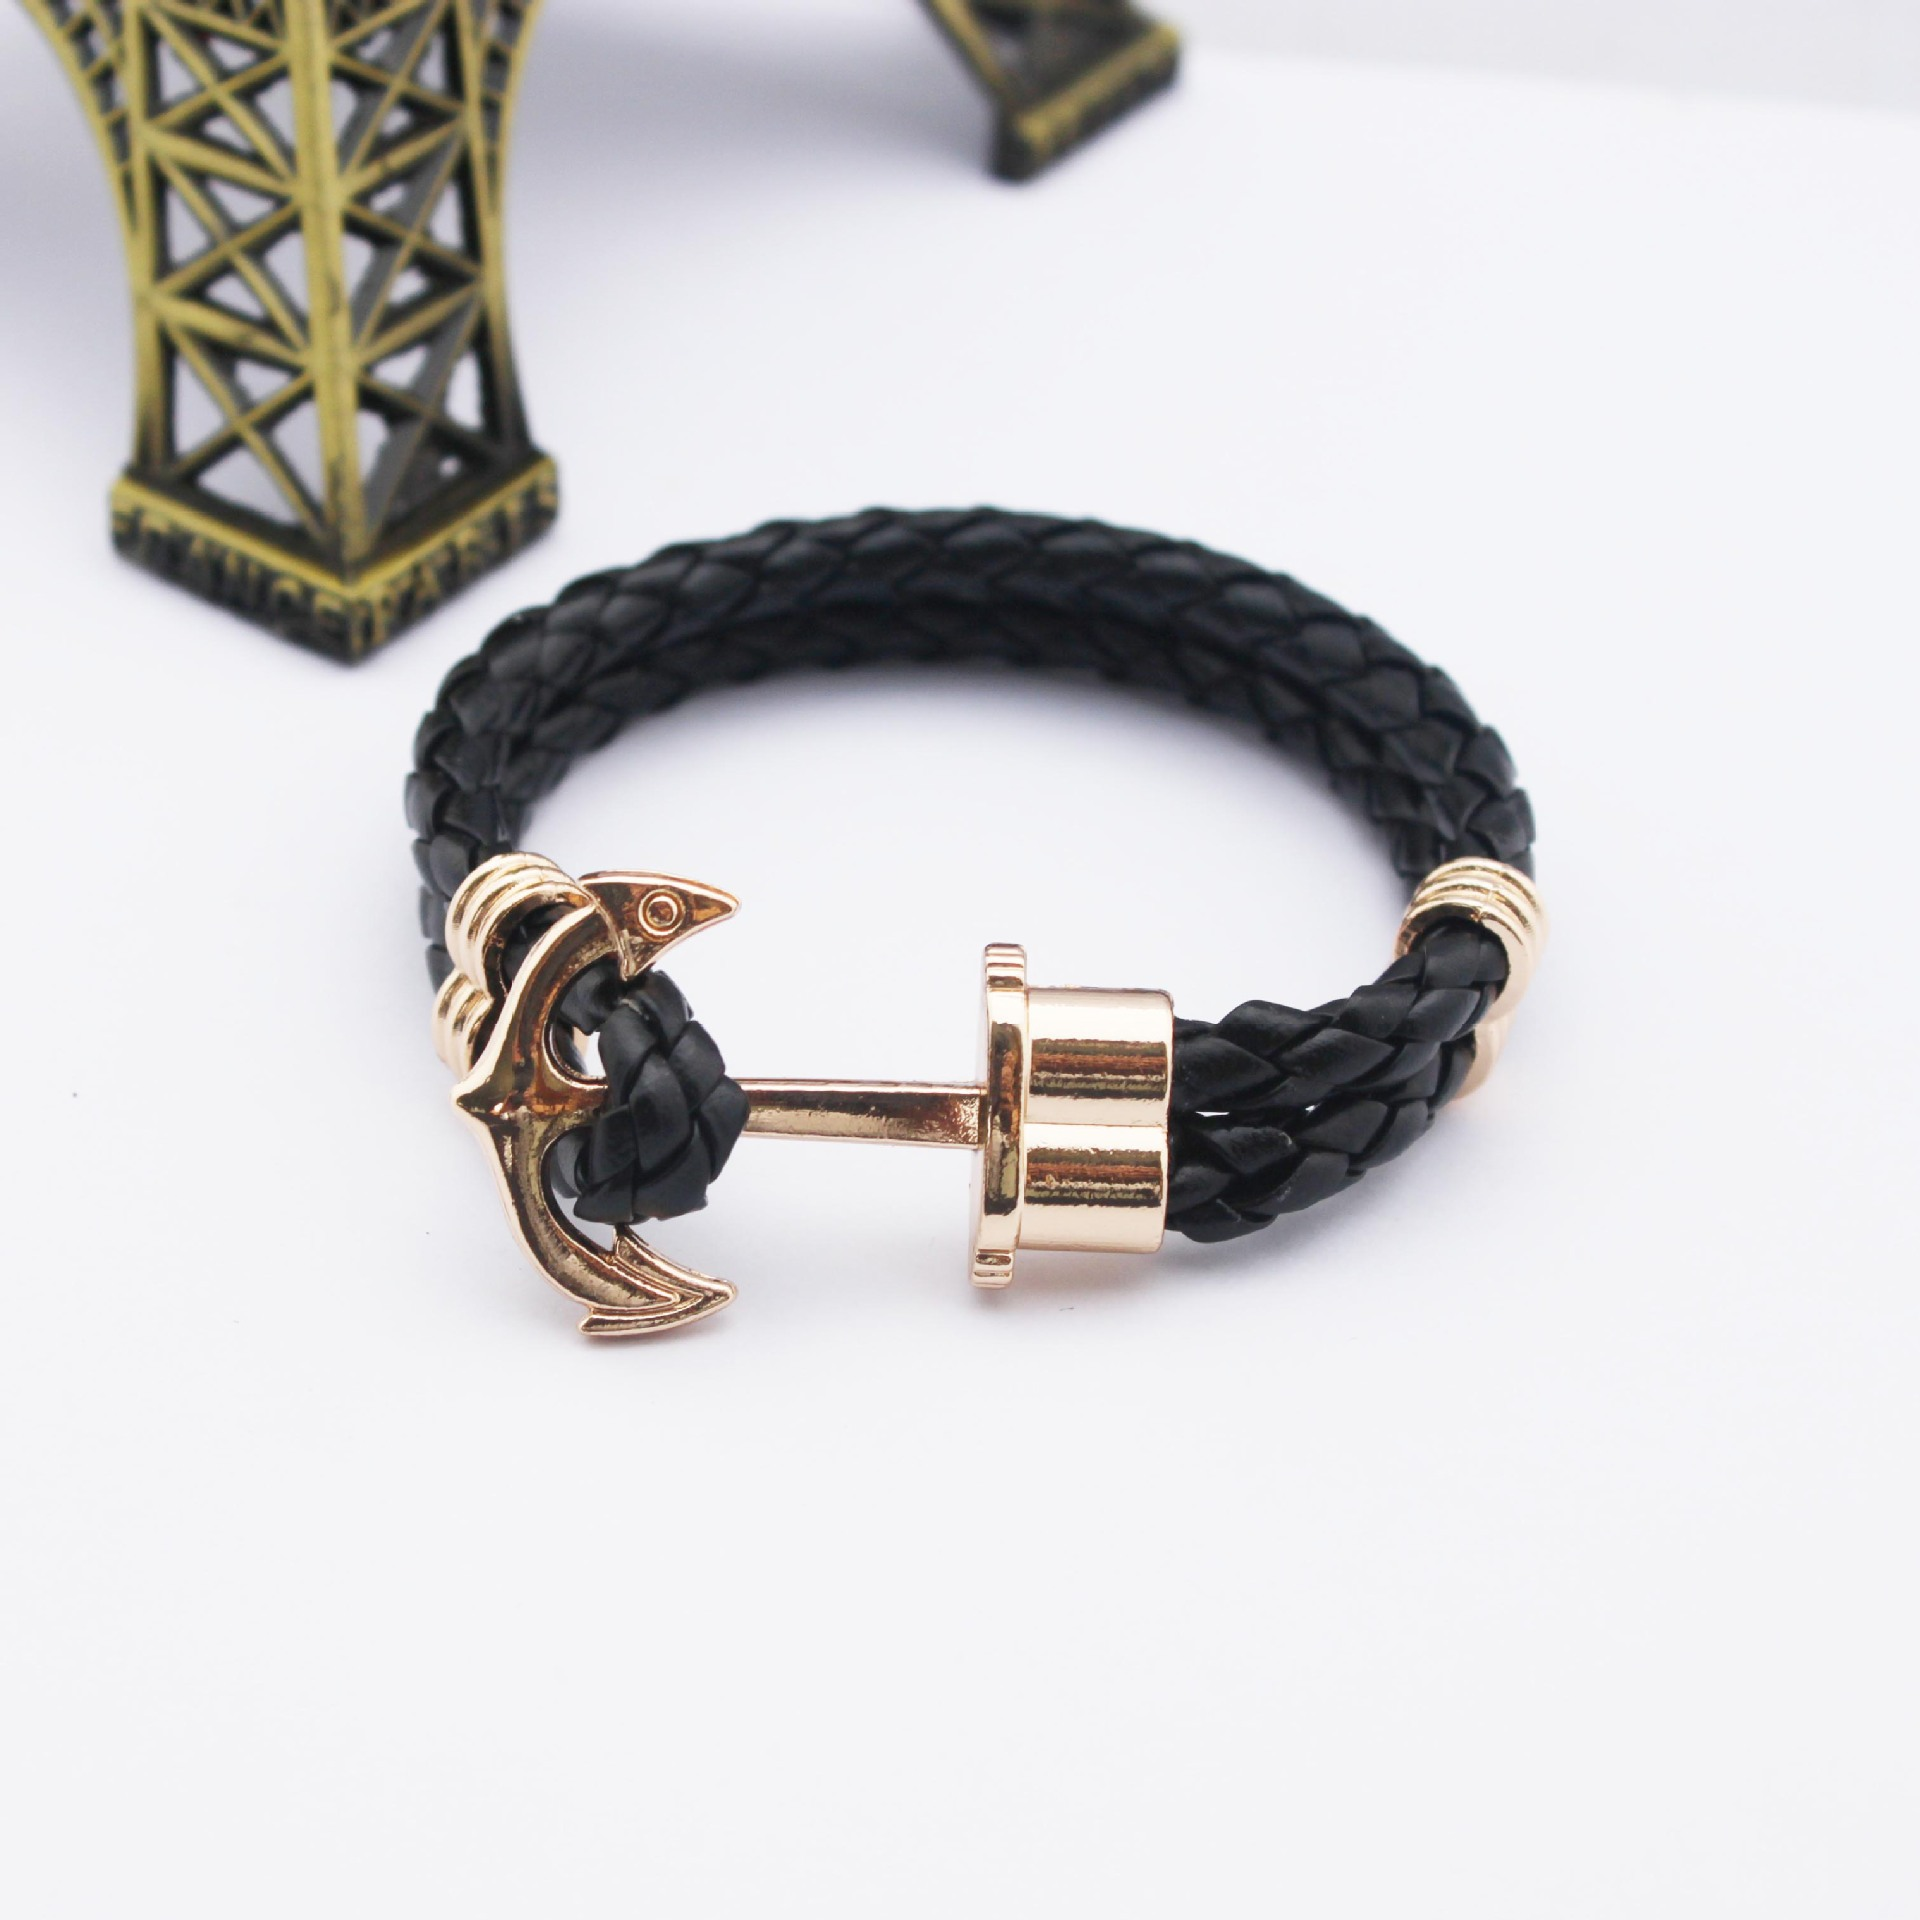 New 2015 Fashion Punk Leather Bracelet Surround Multi layer Woven Rope Leaher Mens Bracelet Jewelry